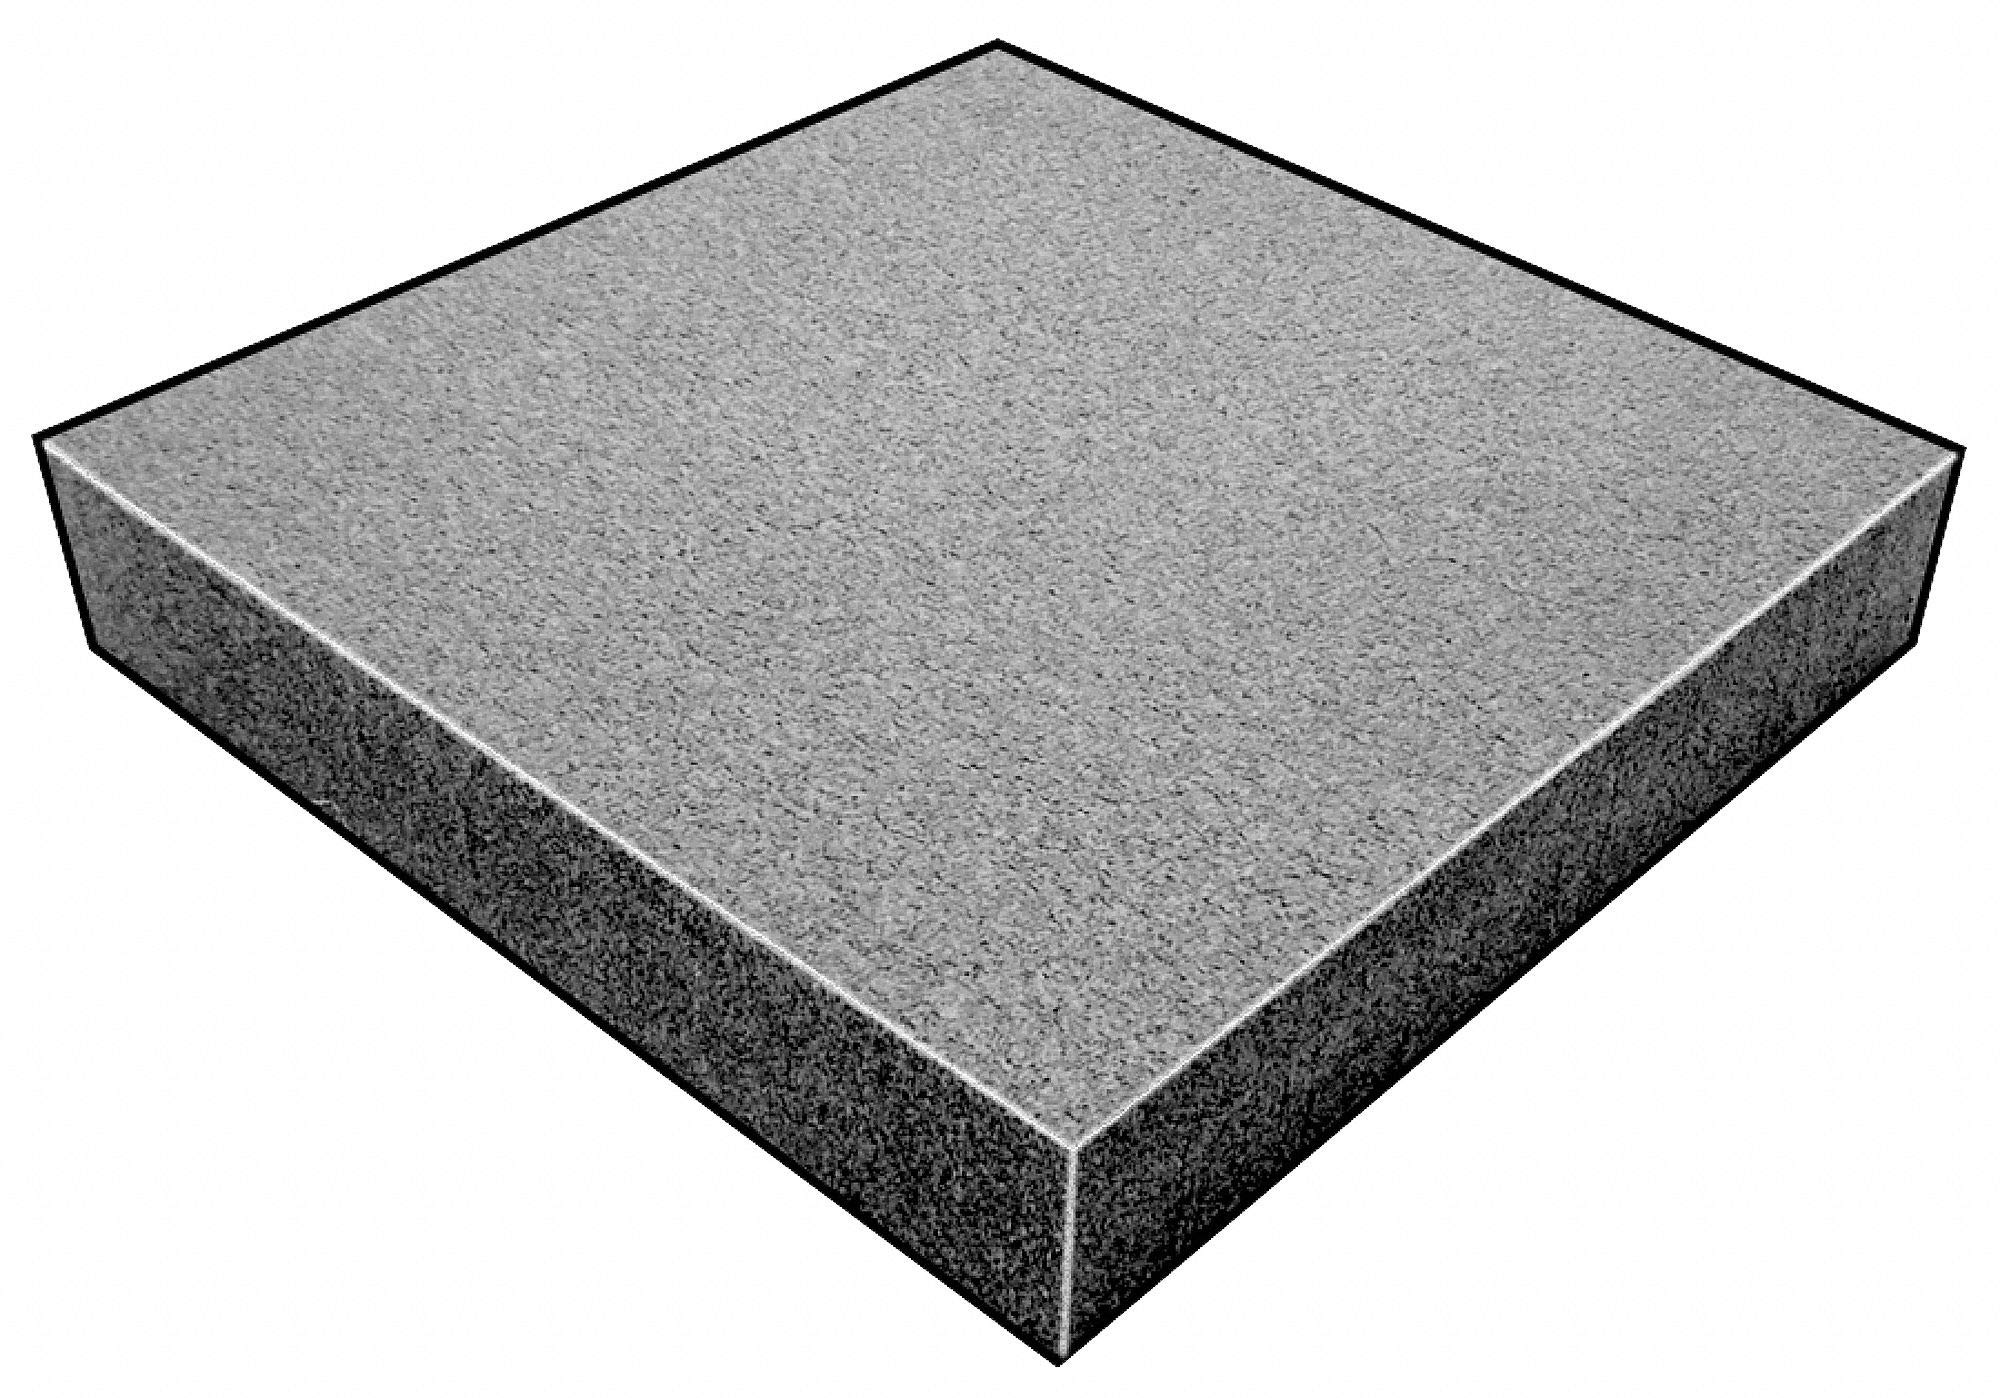 Water-Resistant Closed Cell Foam Sheet, Polyethylene Vinyl, 3/4'' Thick, 12'' W X 12'' L, Charcoal - pack of 5